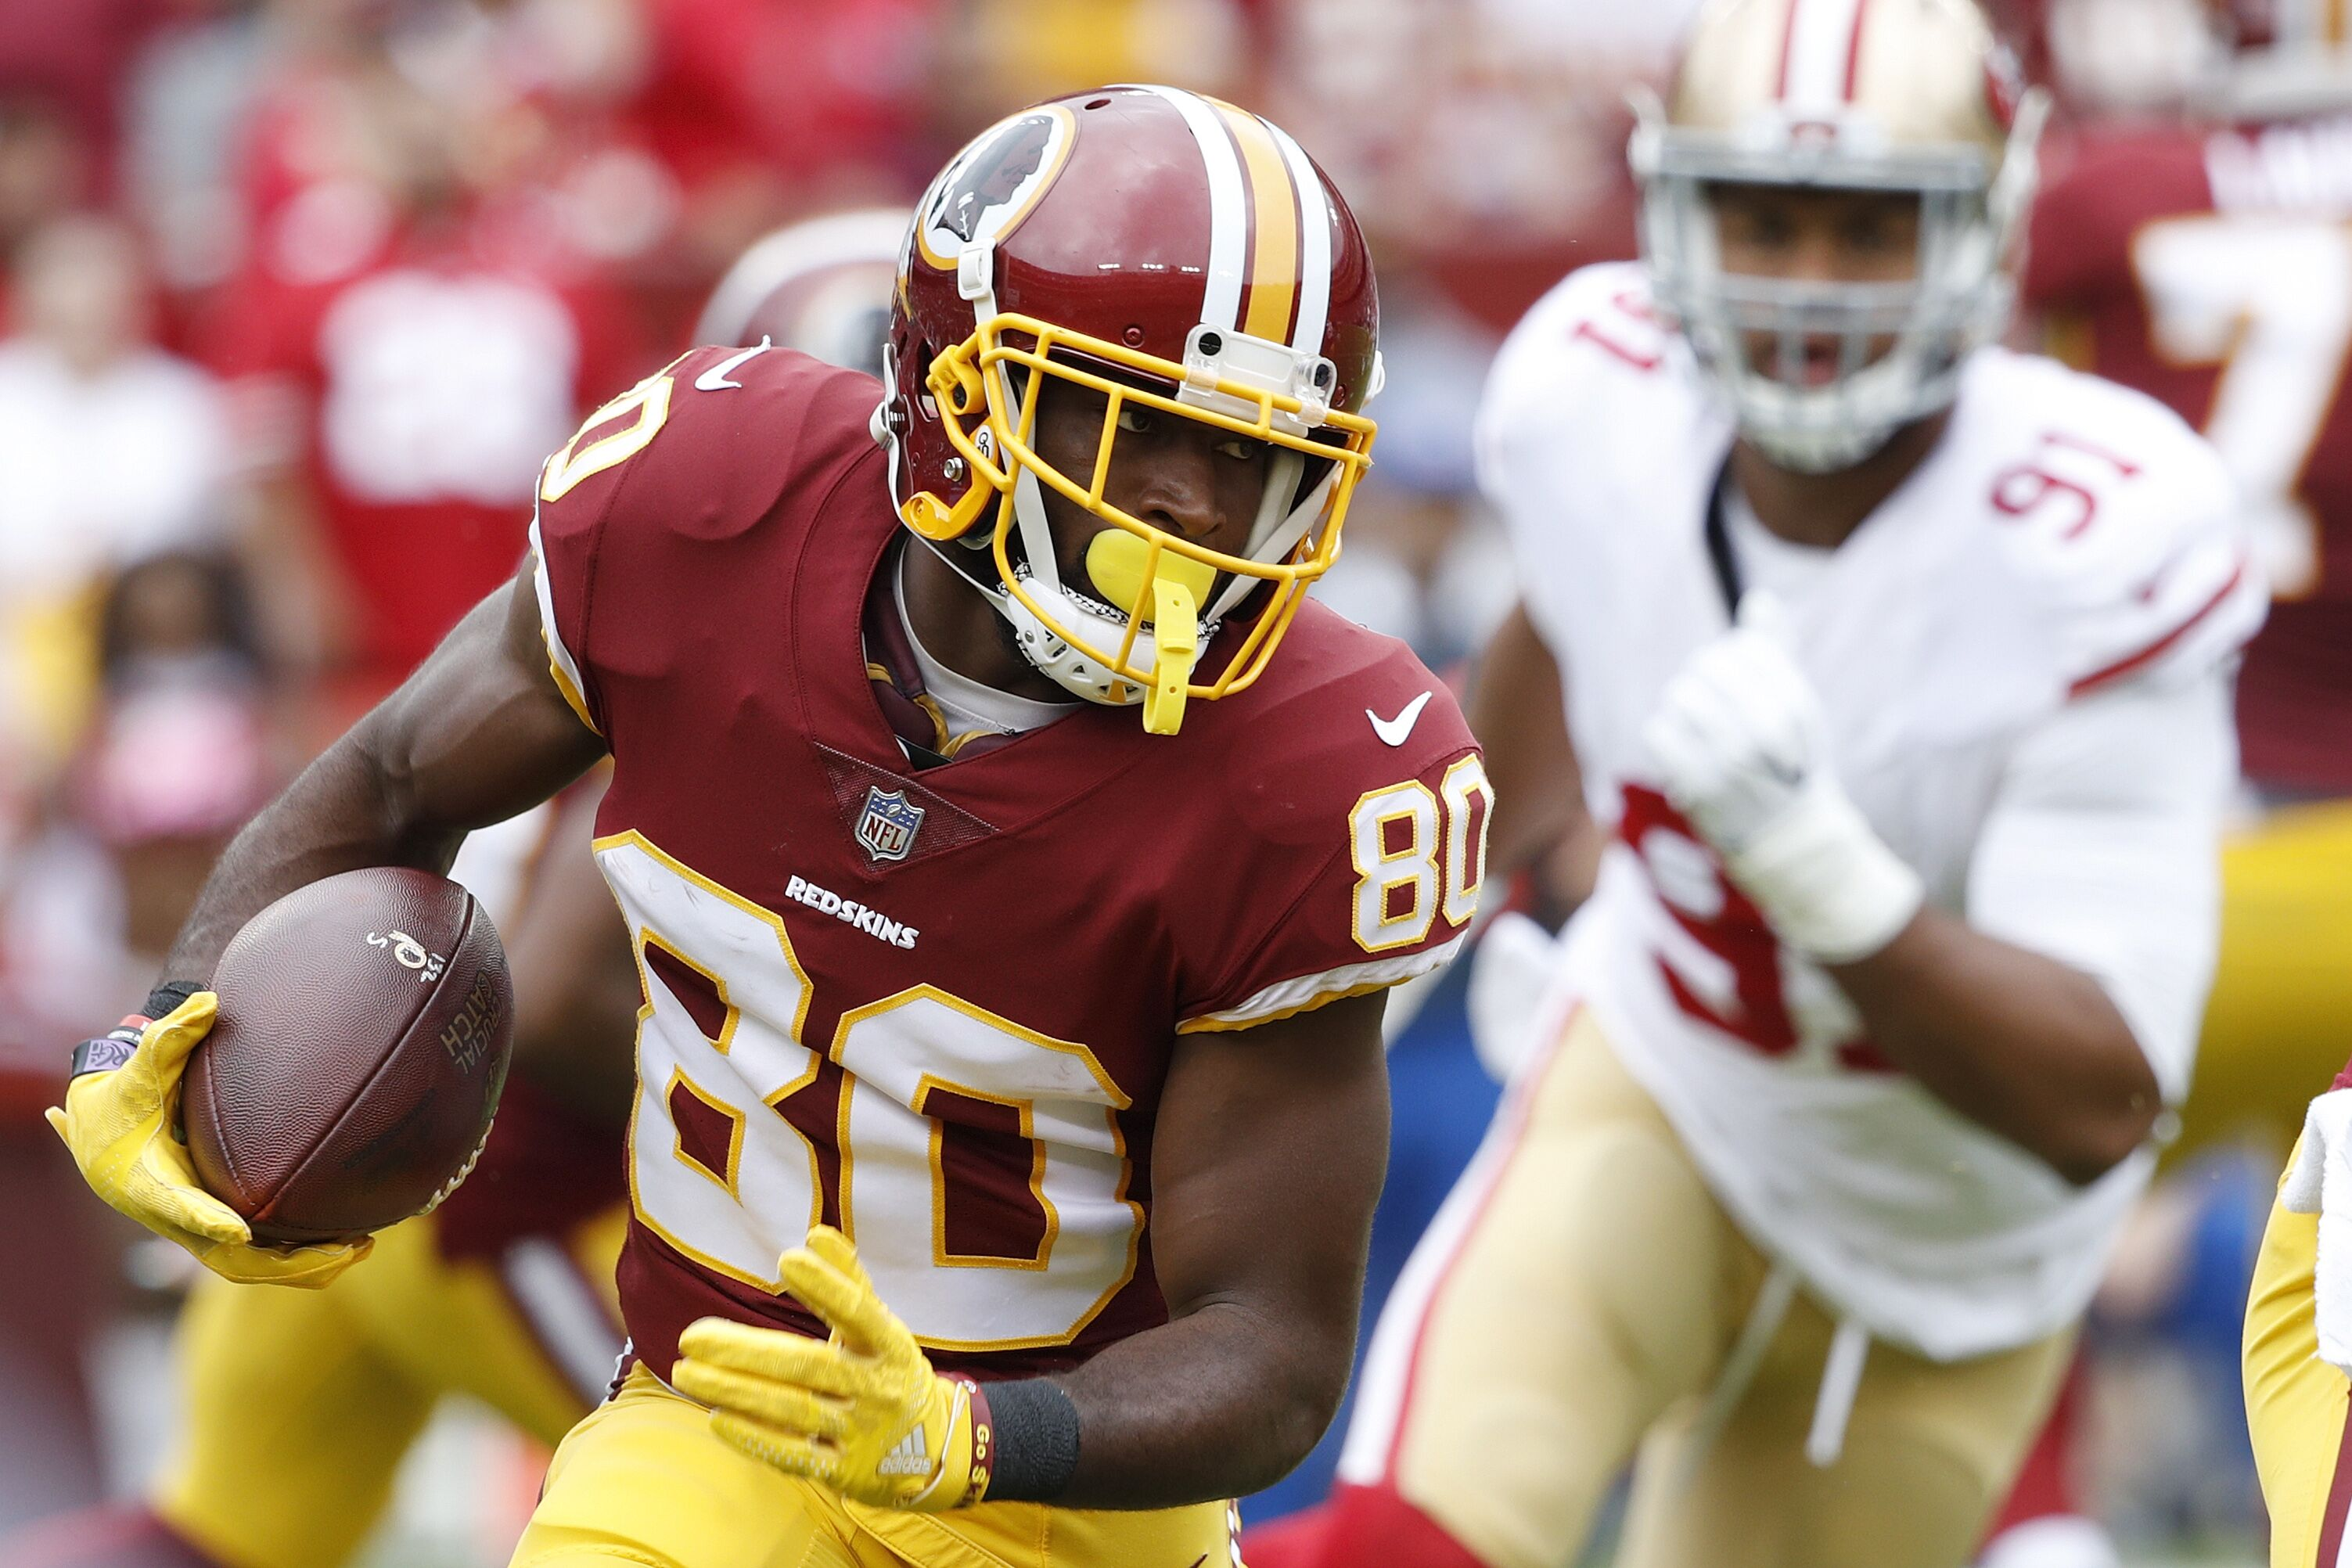 Redskins Breakdown Team Survives After Blowing  Point Lead